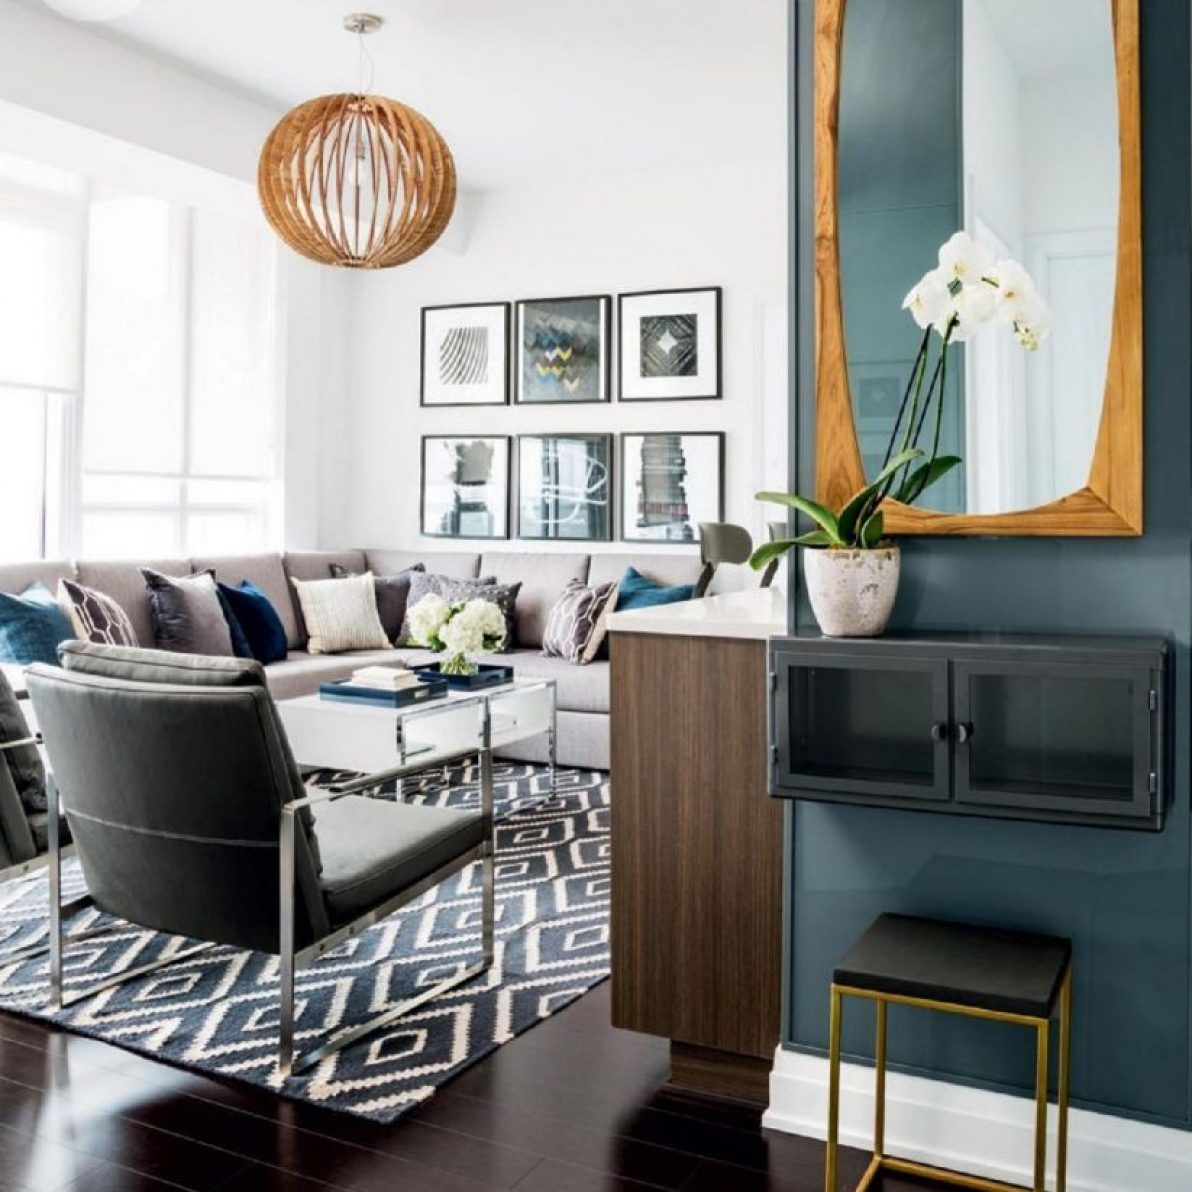 Home Design Ideas For Condos: Home Decor By Sneha Punwani In 2020